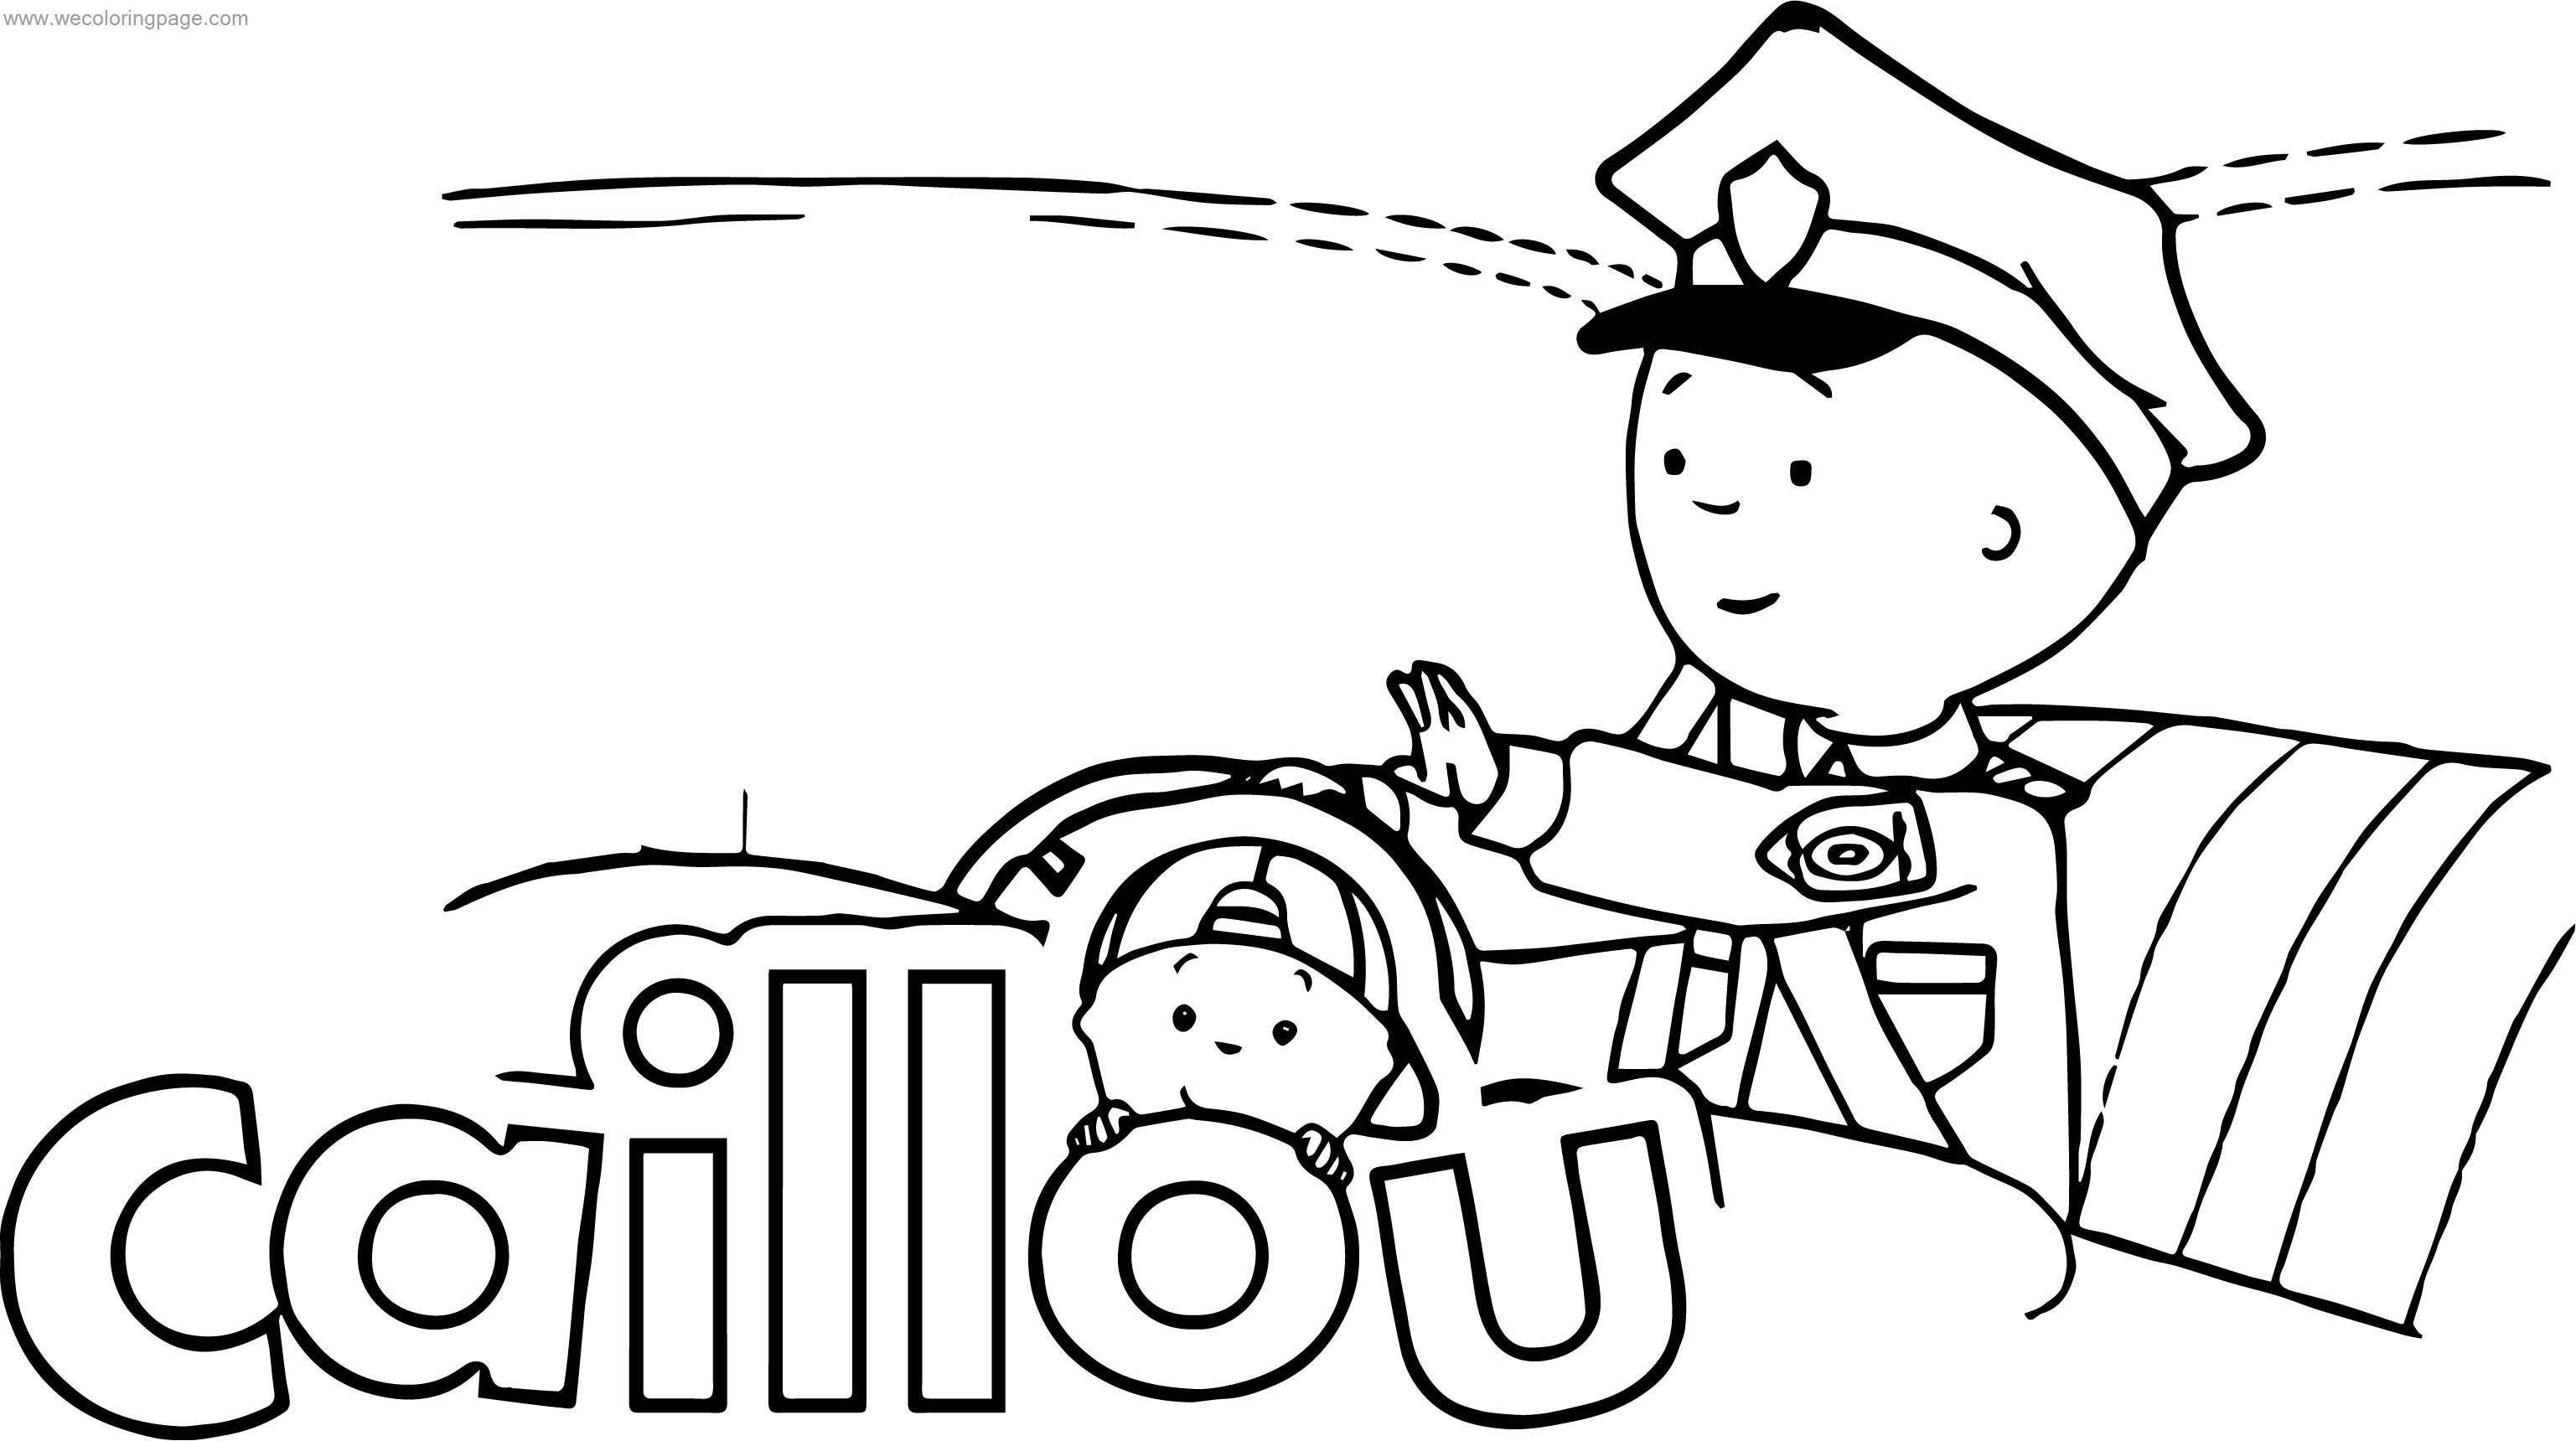 Caillou Police Coloring Page